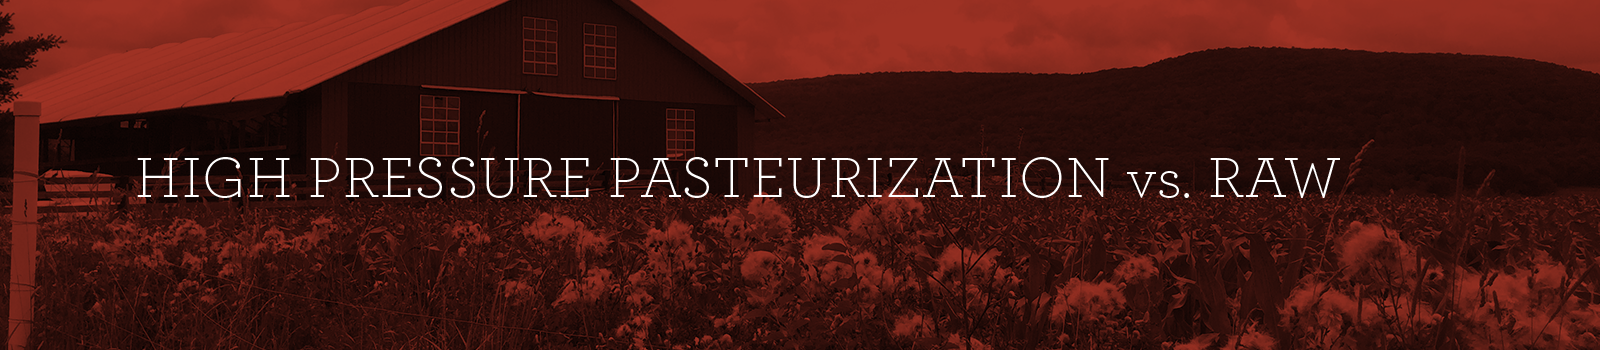 High Pressure Pasteurization ≠ Raw